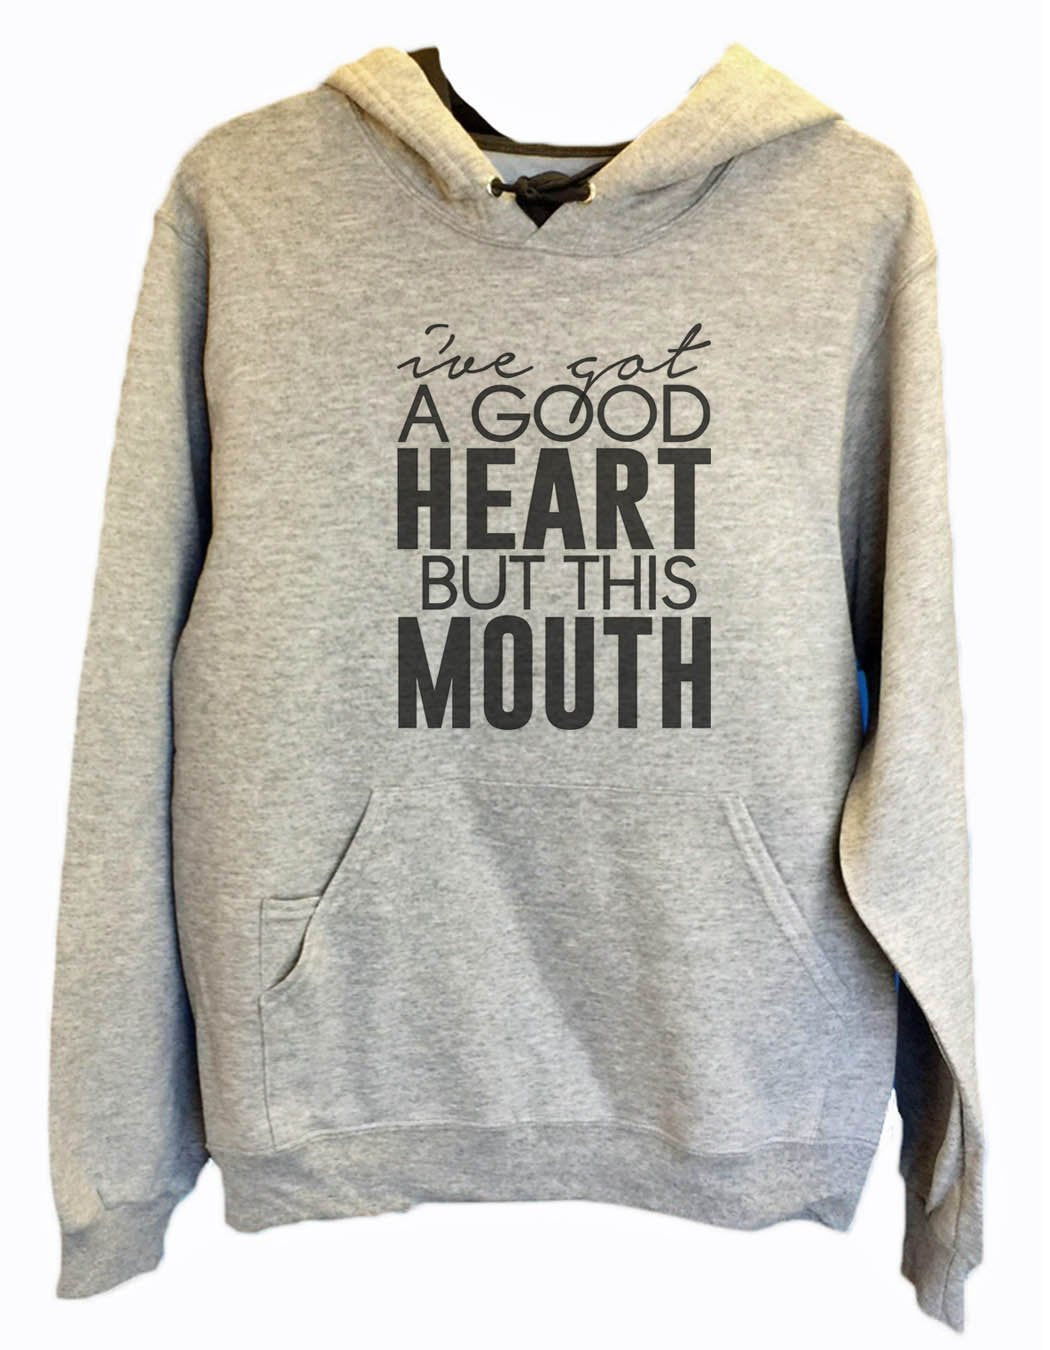 UNISEX HOODIE - I've Got A Good Heart But This Mouth - FUNNY MENS AND WOMENS HOODED SWEATSHIRTS - 2148 Funny Shirt Small / Heather Grey